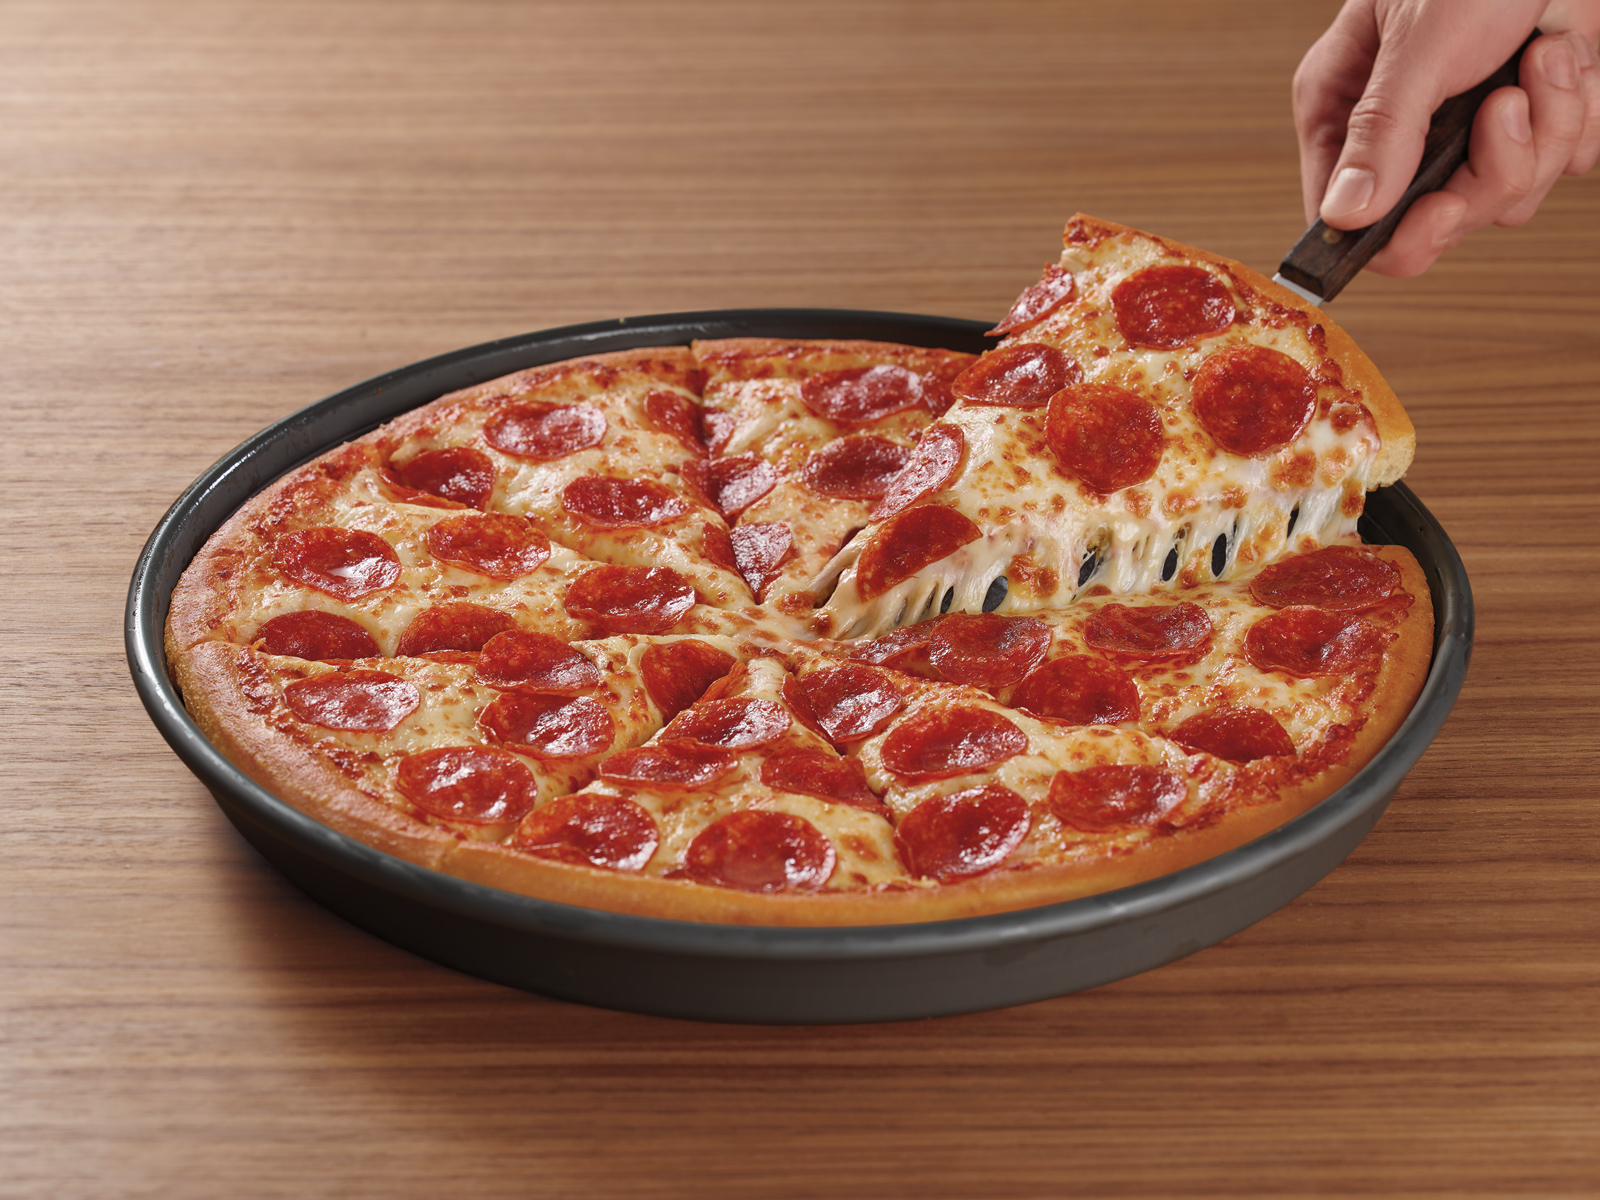 pizza-hut-pan-pizza-FT-BLOG0519.jpg